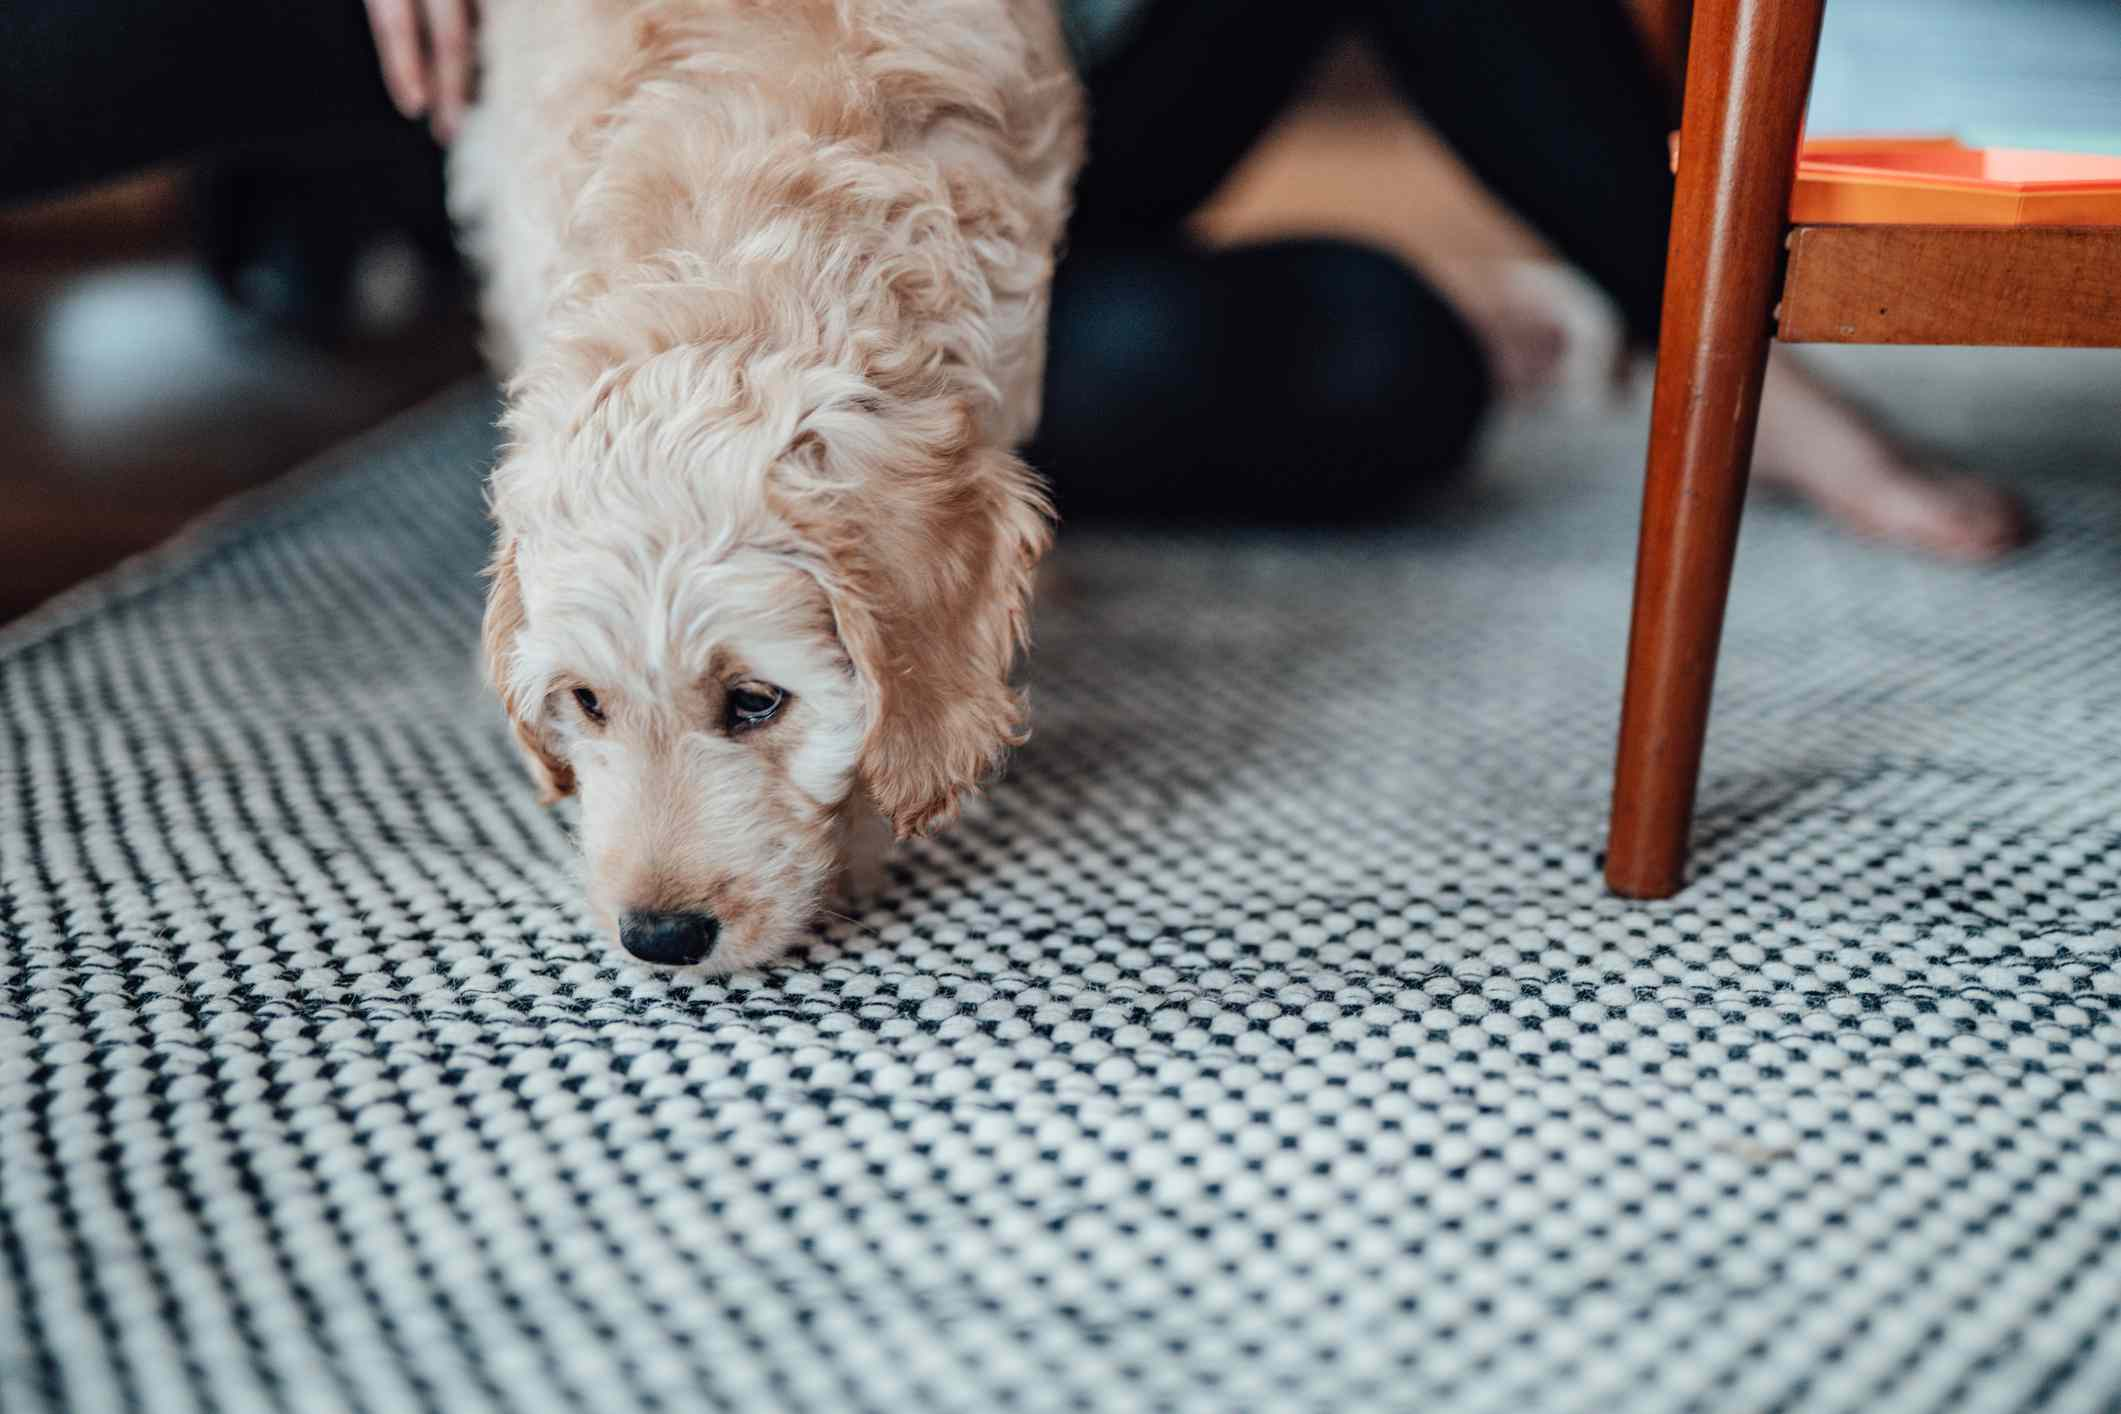 Puppy Sniffing The Rug On The Floor